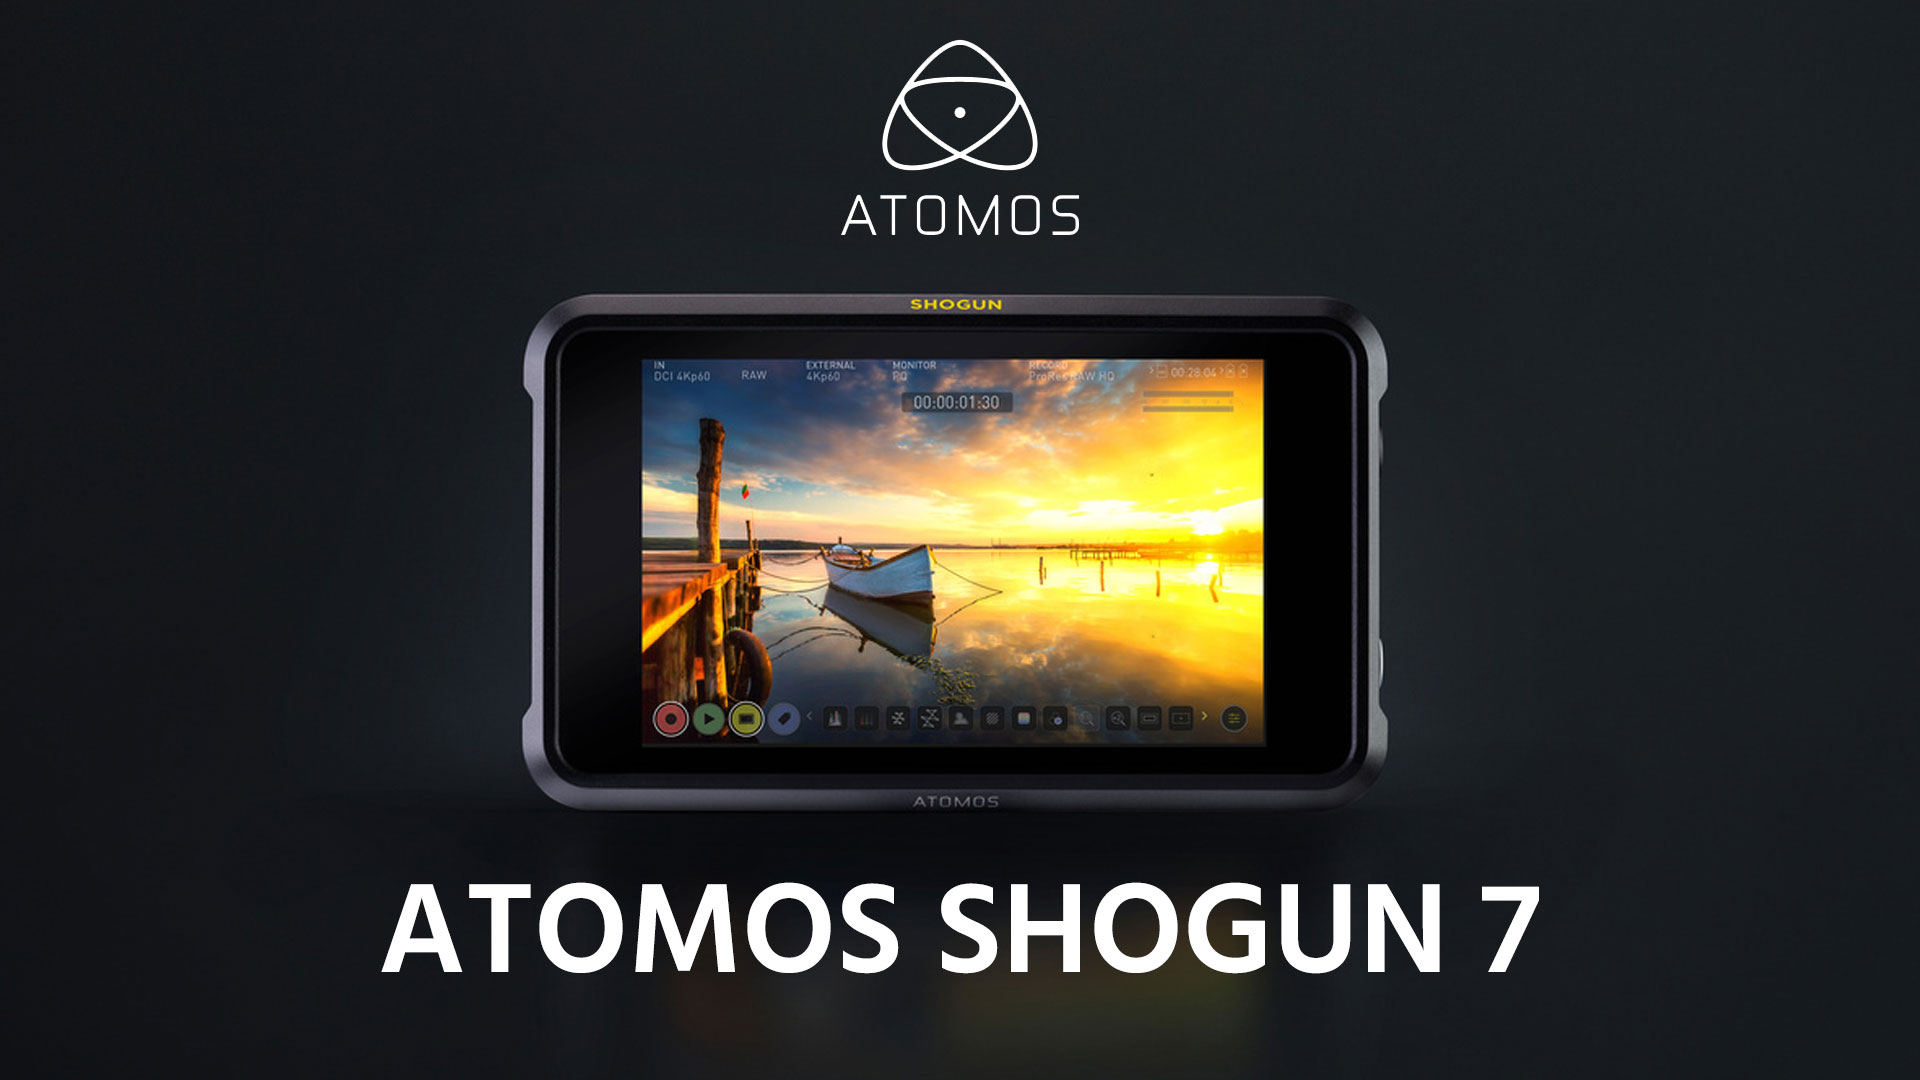 Atomos Shogun 7 Announced – 5 7K ProRes RAW, Live Switching, 1500nit